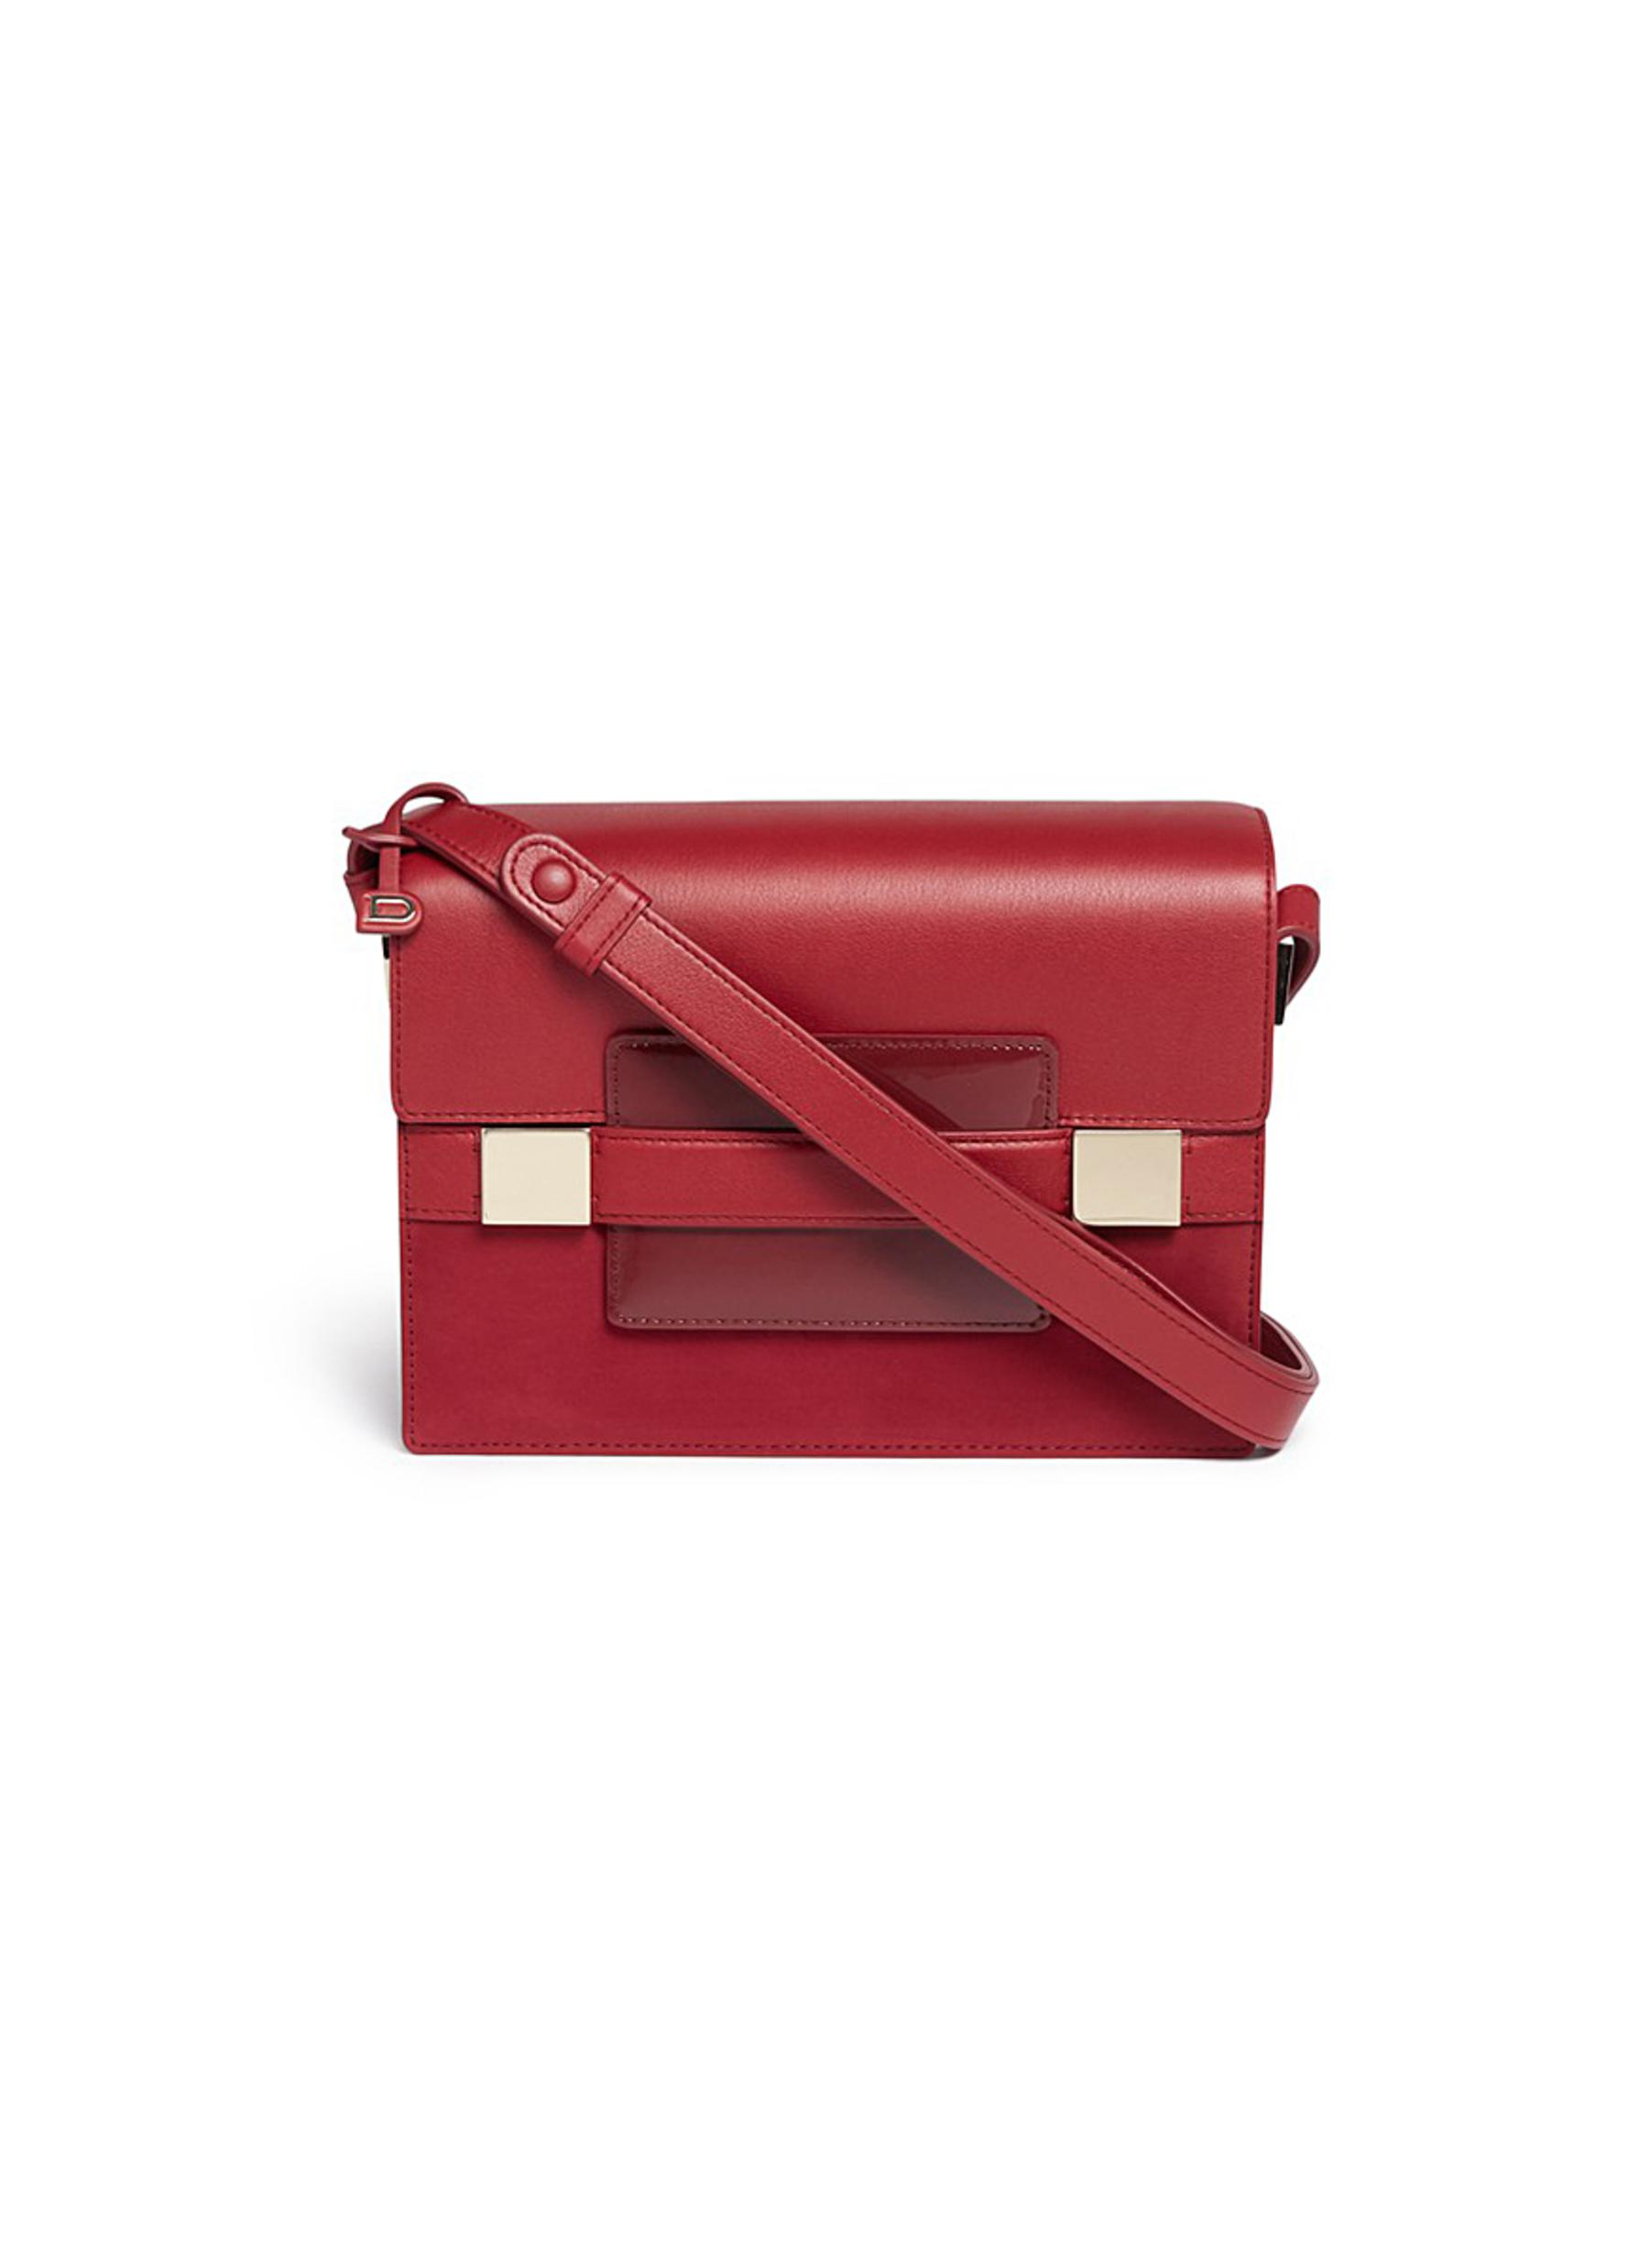 Madame PM Polo panelled leather shoulder bag by Delvaux